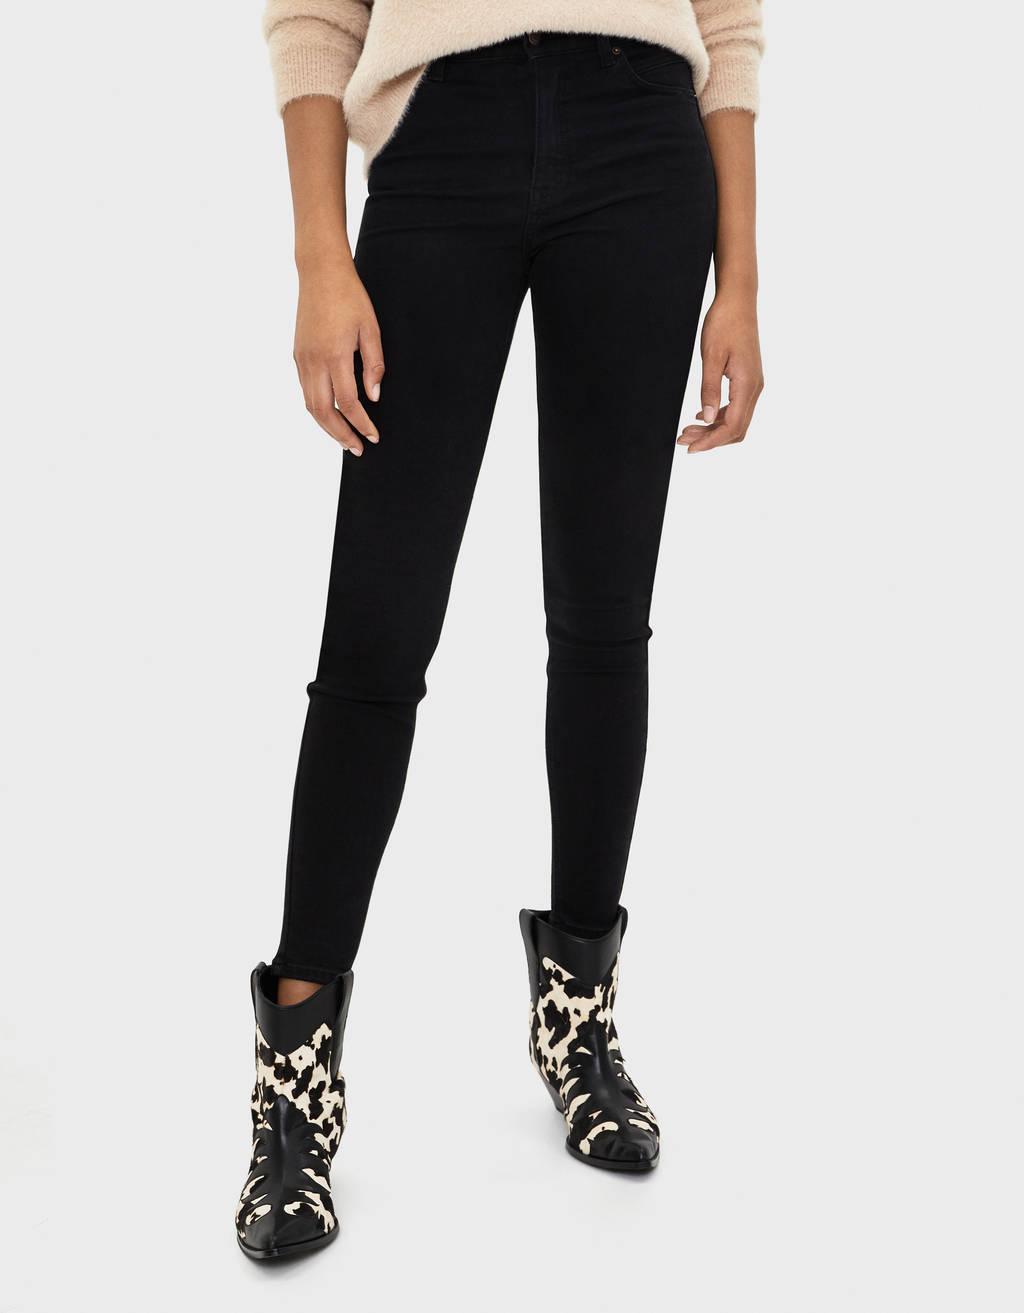 Warm high-waist skinny jeans